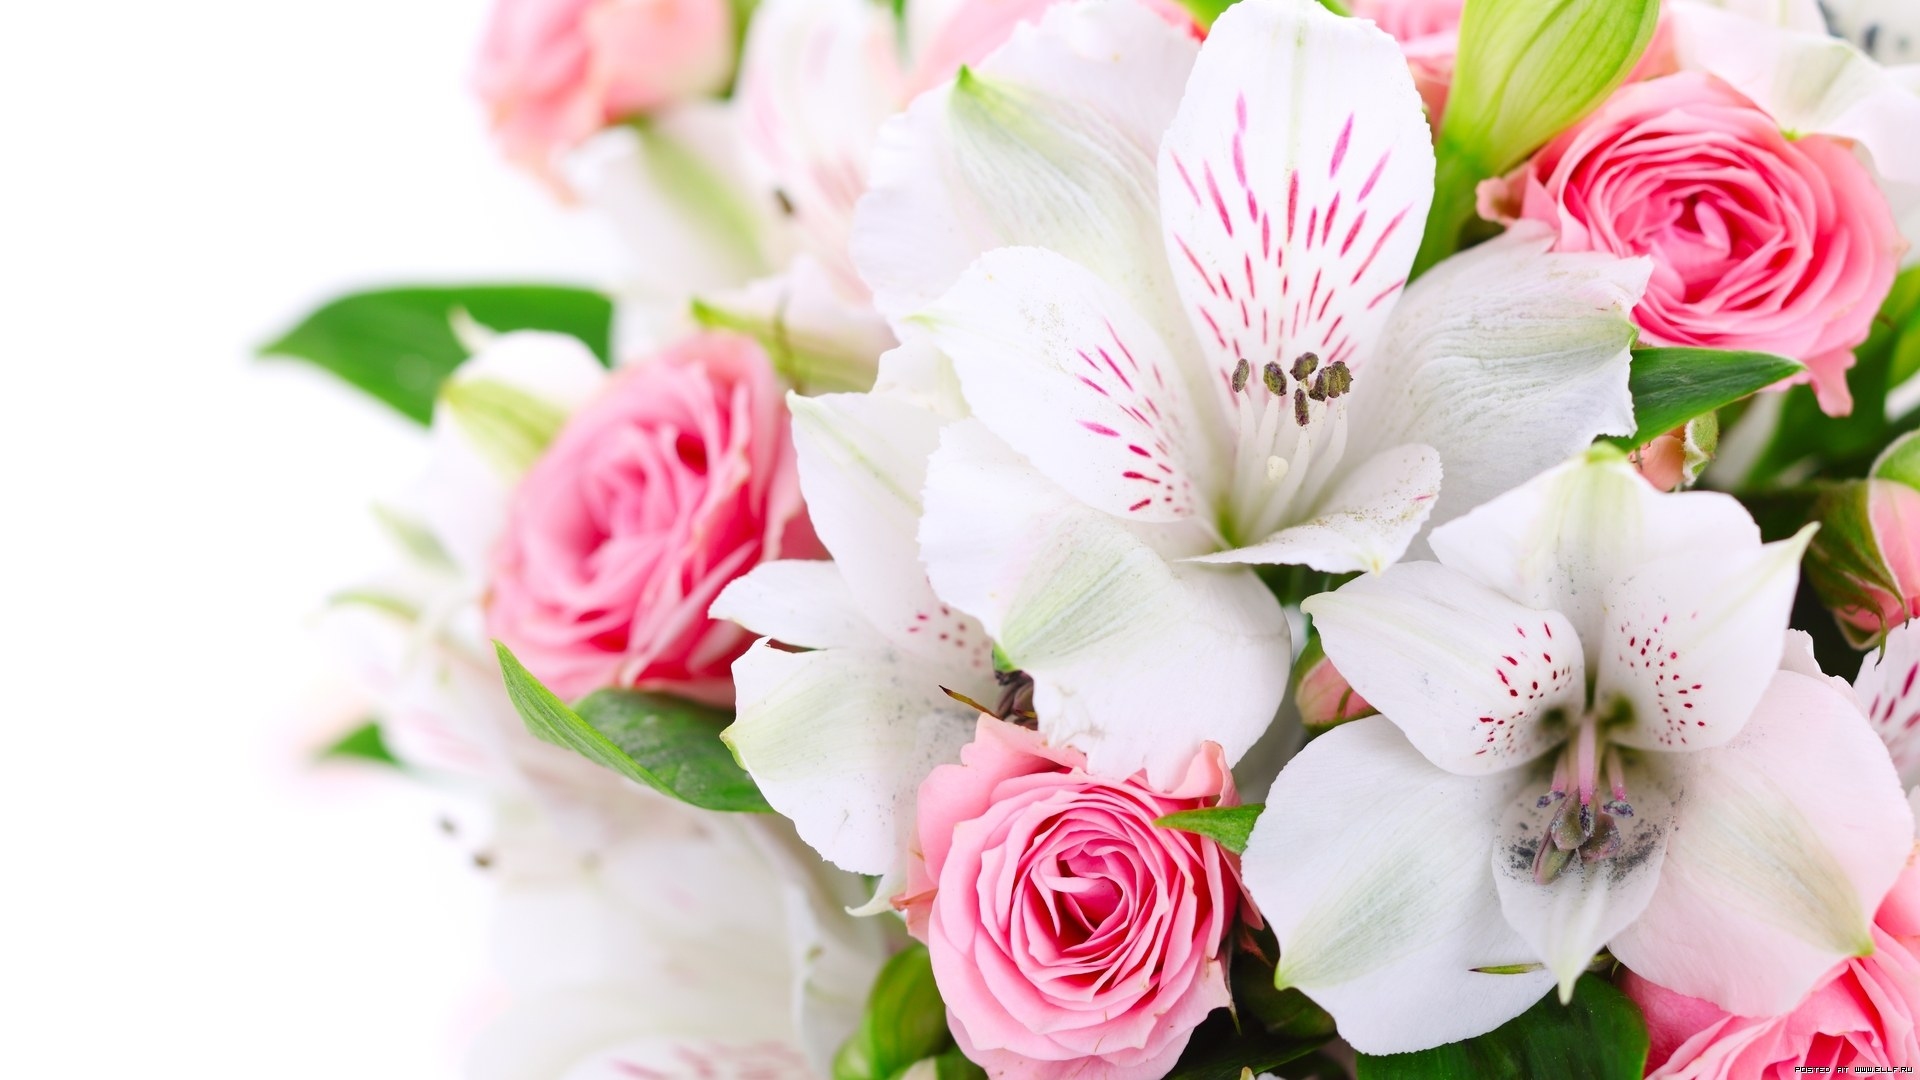 HD Beautiful Flowers Wallpapers and Photos 1920x1080 px By June 1920x1080